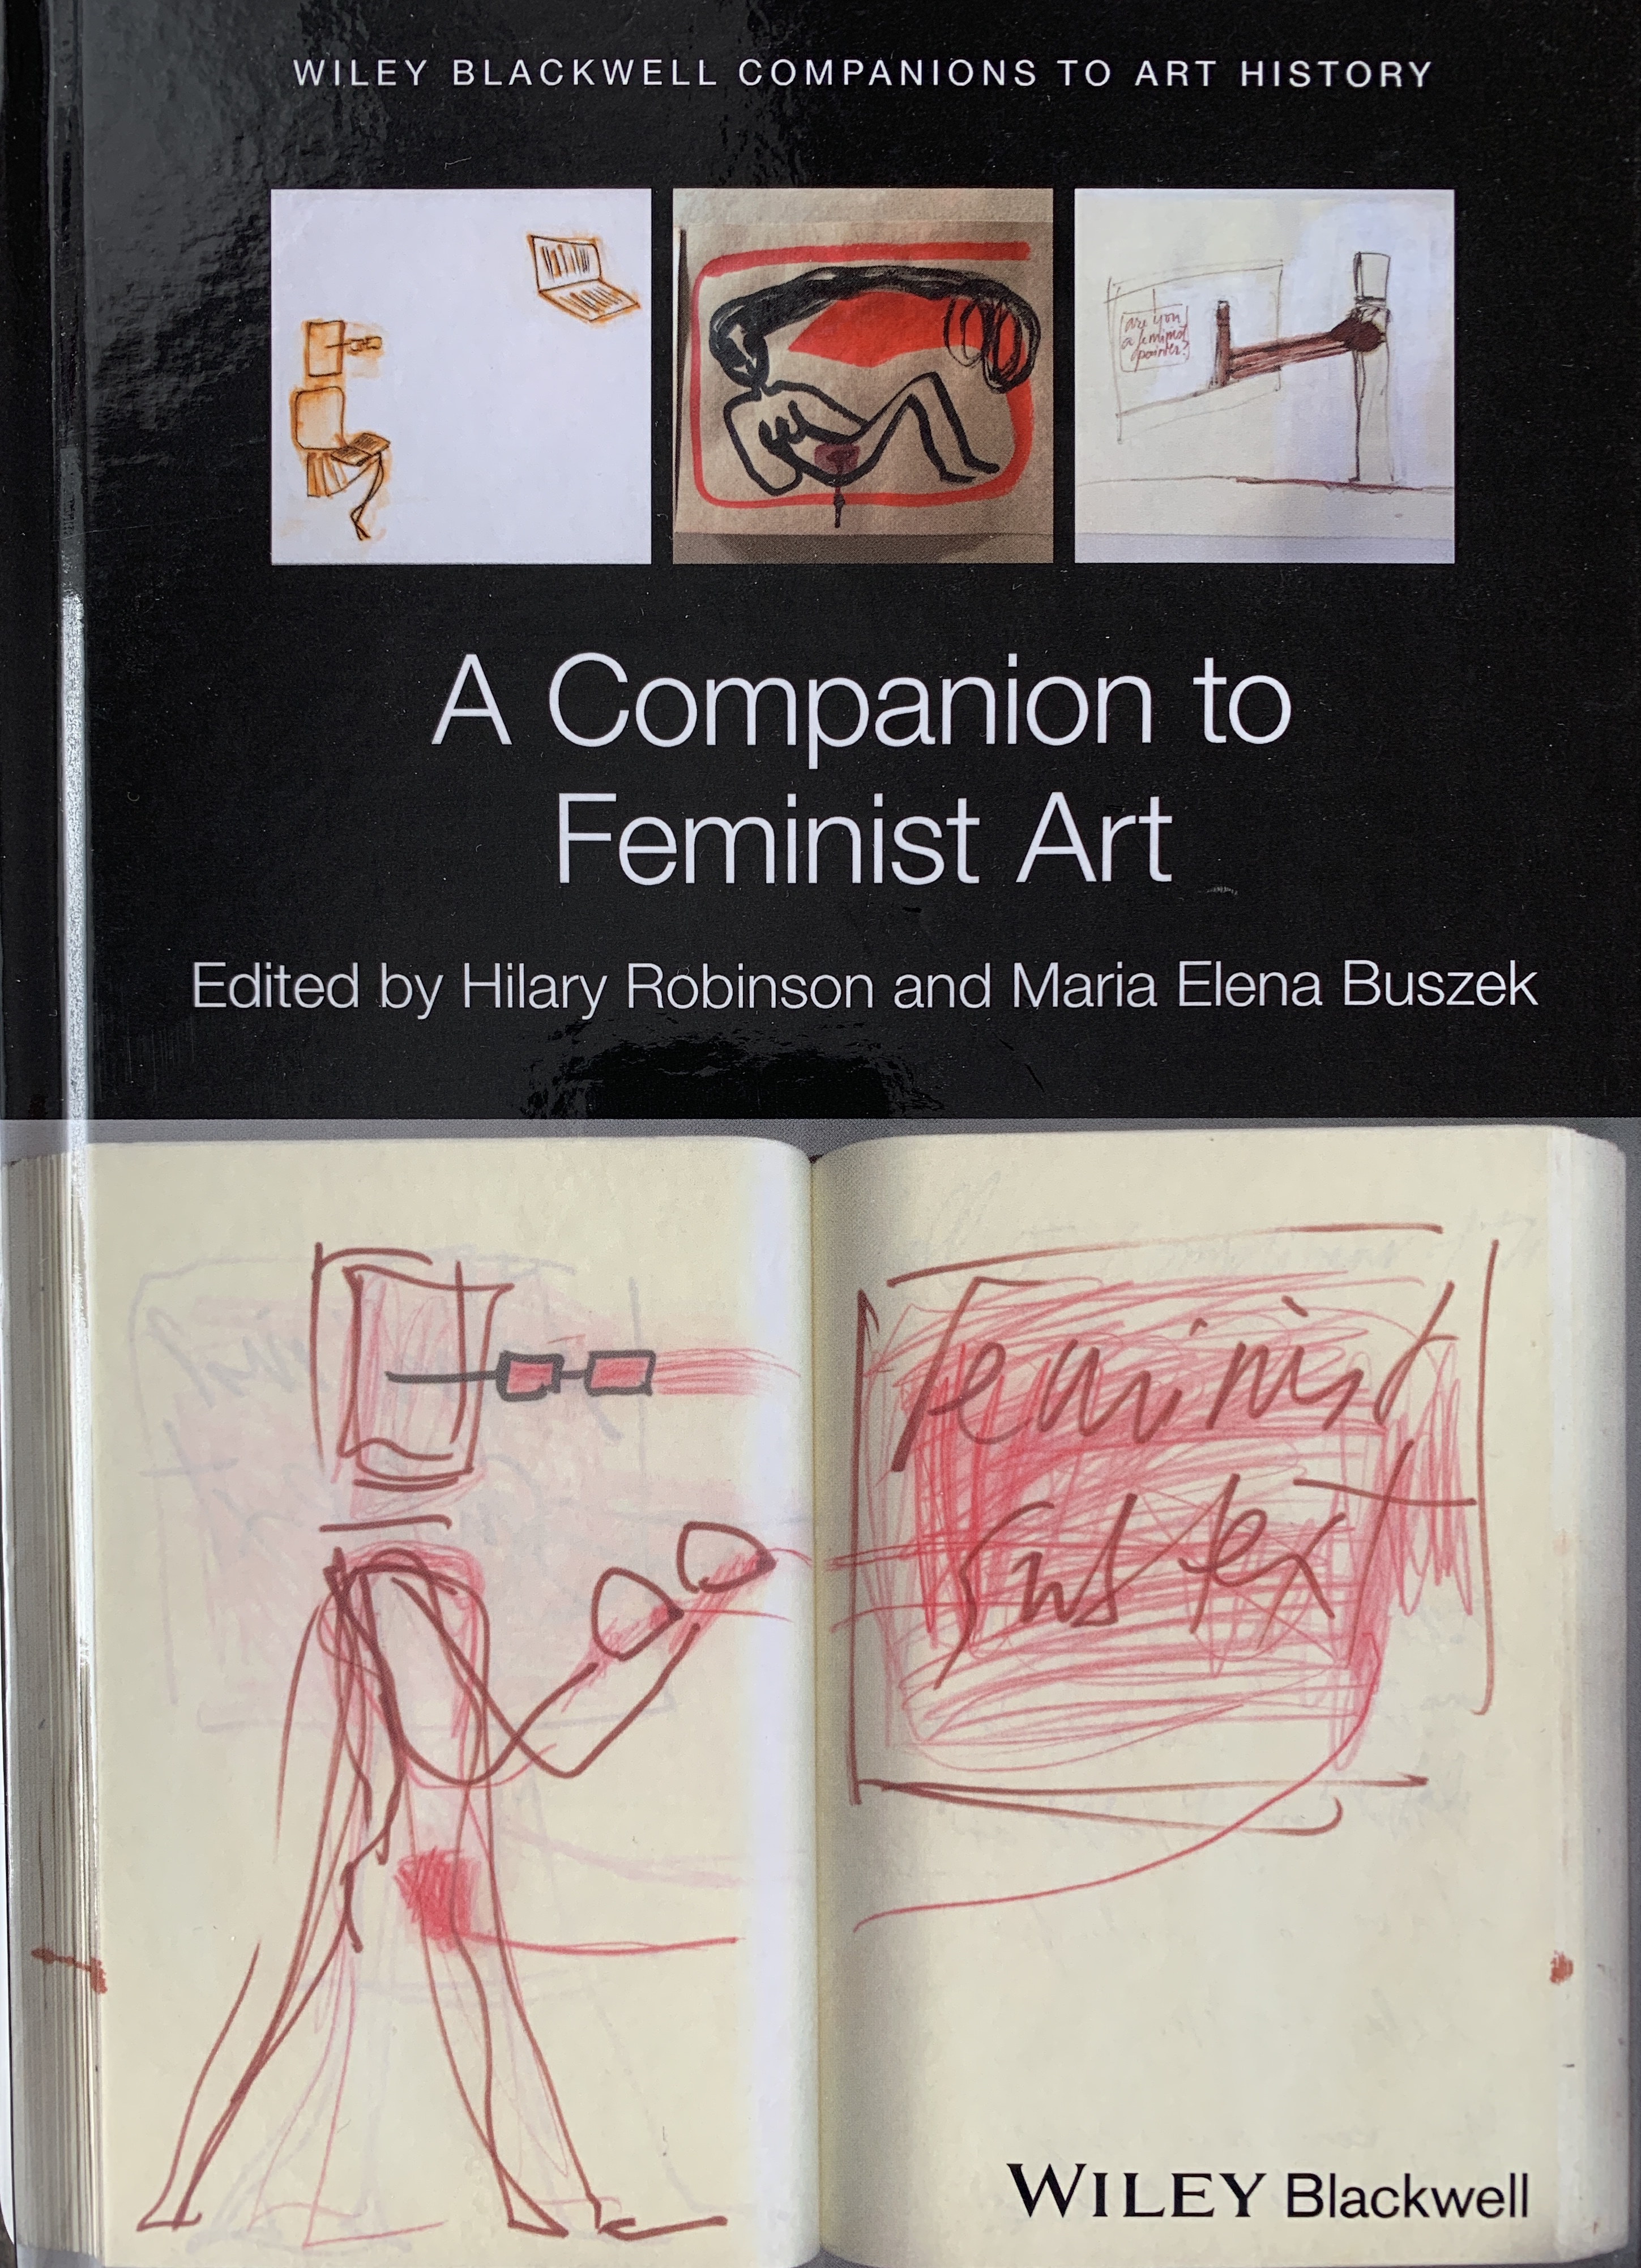 Erasure, Transformation And The Politics Of Pedagogy: A Feminist Artistic/curatorial Practice, Article In Maria Buszek & Hilary Robinson (eds), 2019, A Companion To Feminist Art, Wiley Blackwell